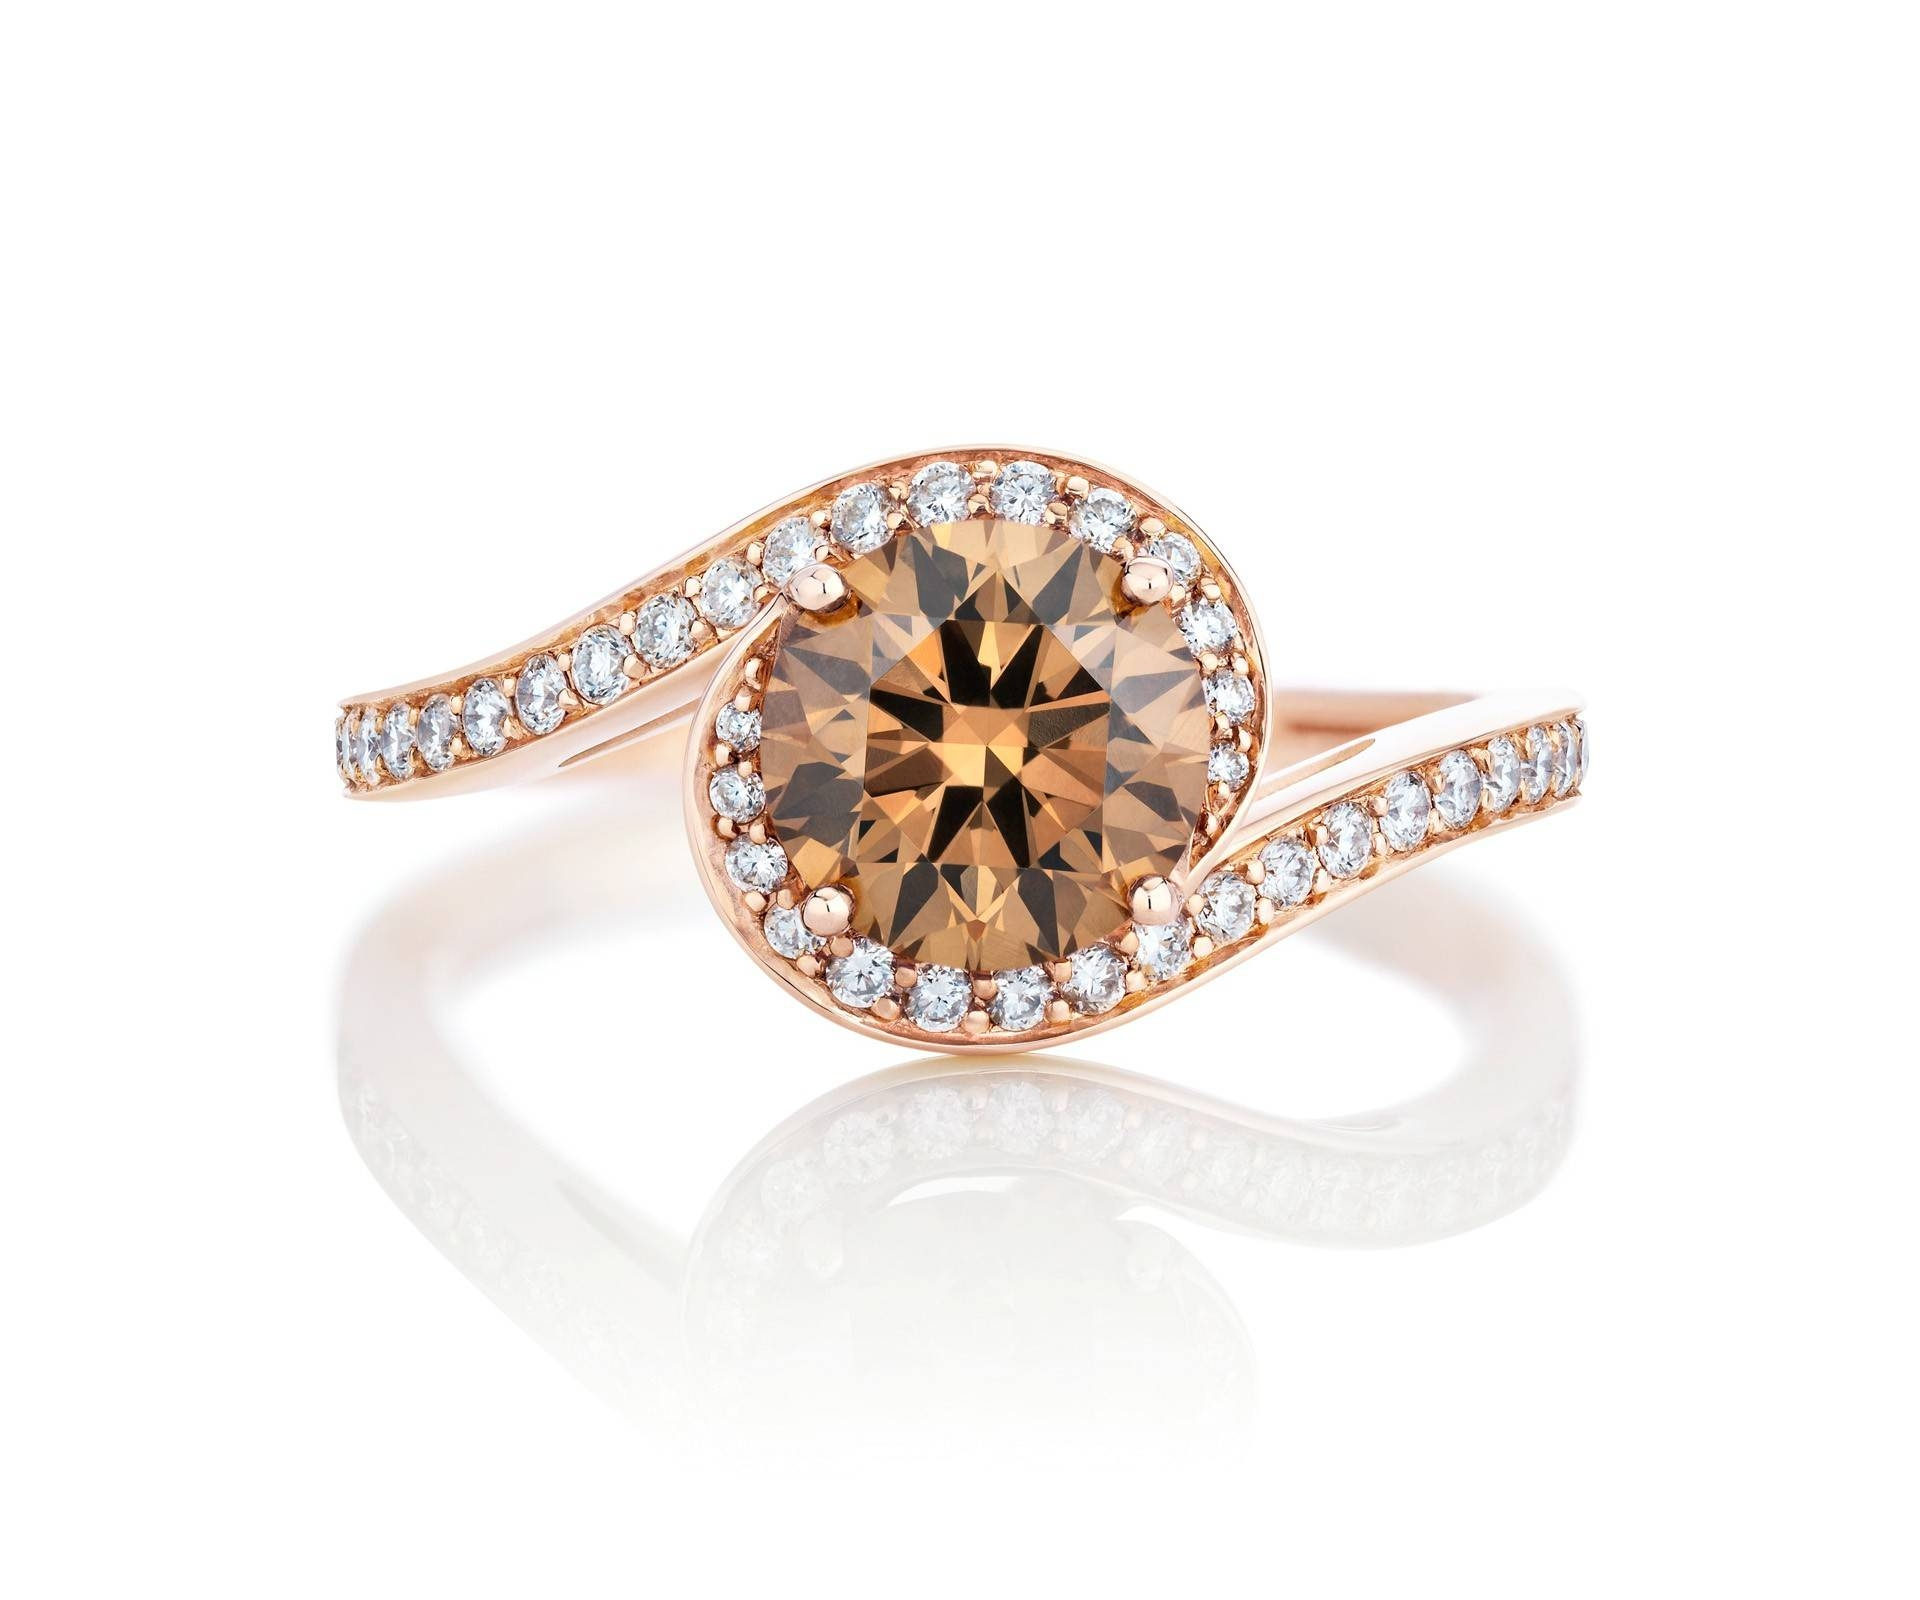 Rose Gold Diamond Engagement Rings | De Beers Throughout Colorful Diamond Engagement Rings (View 10 of 15)